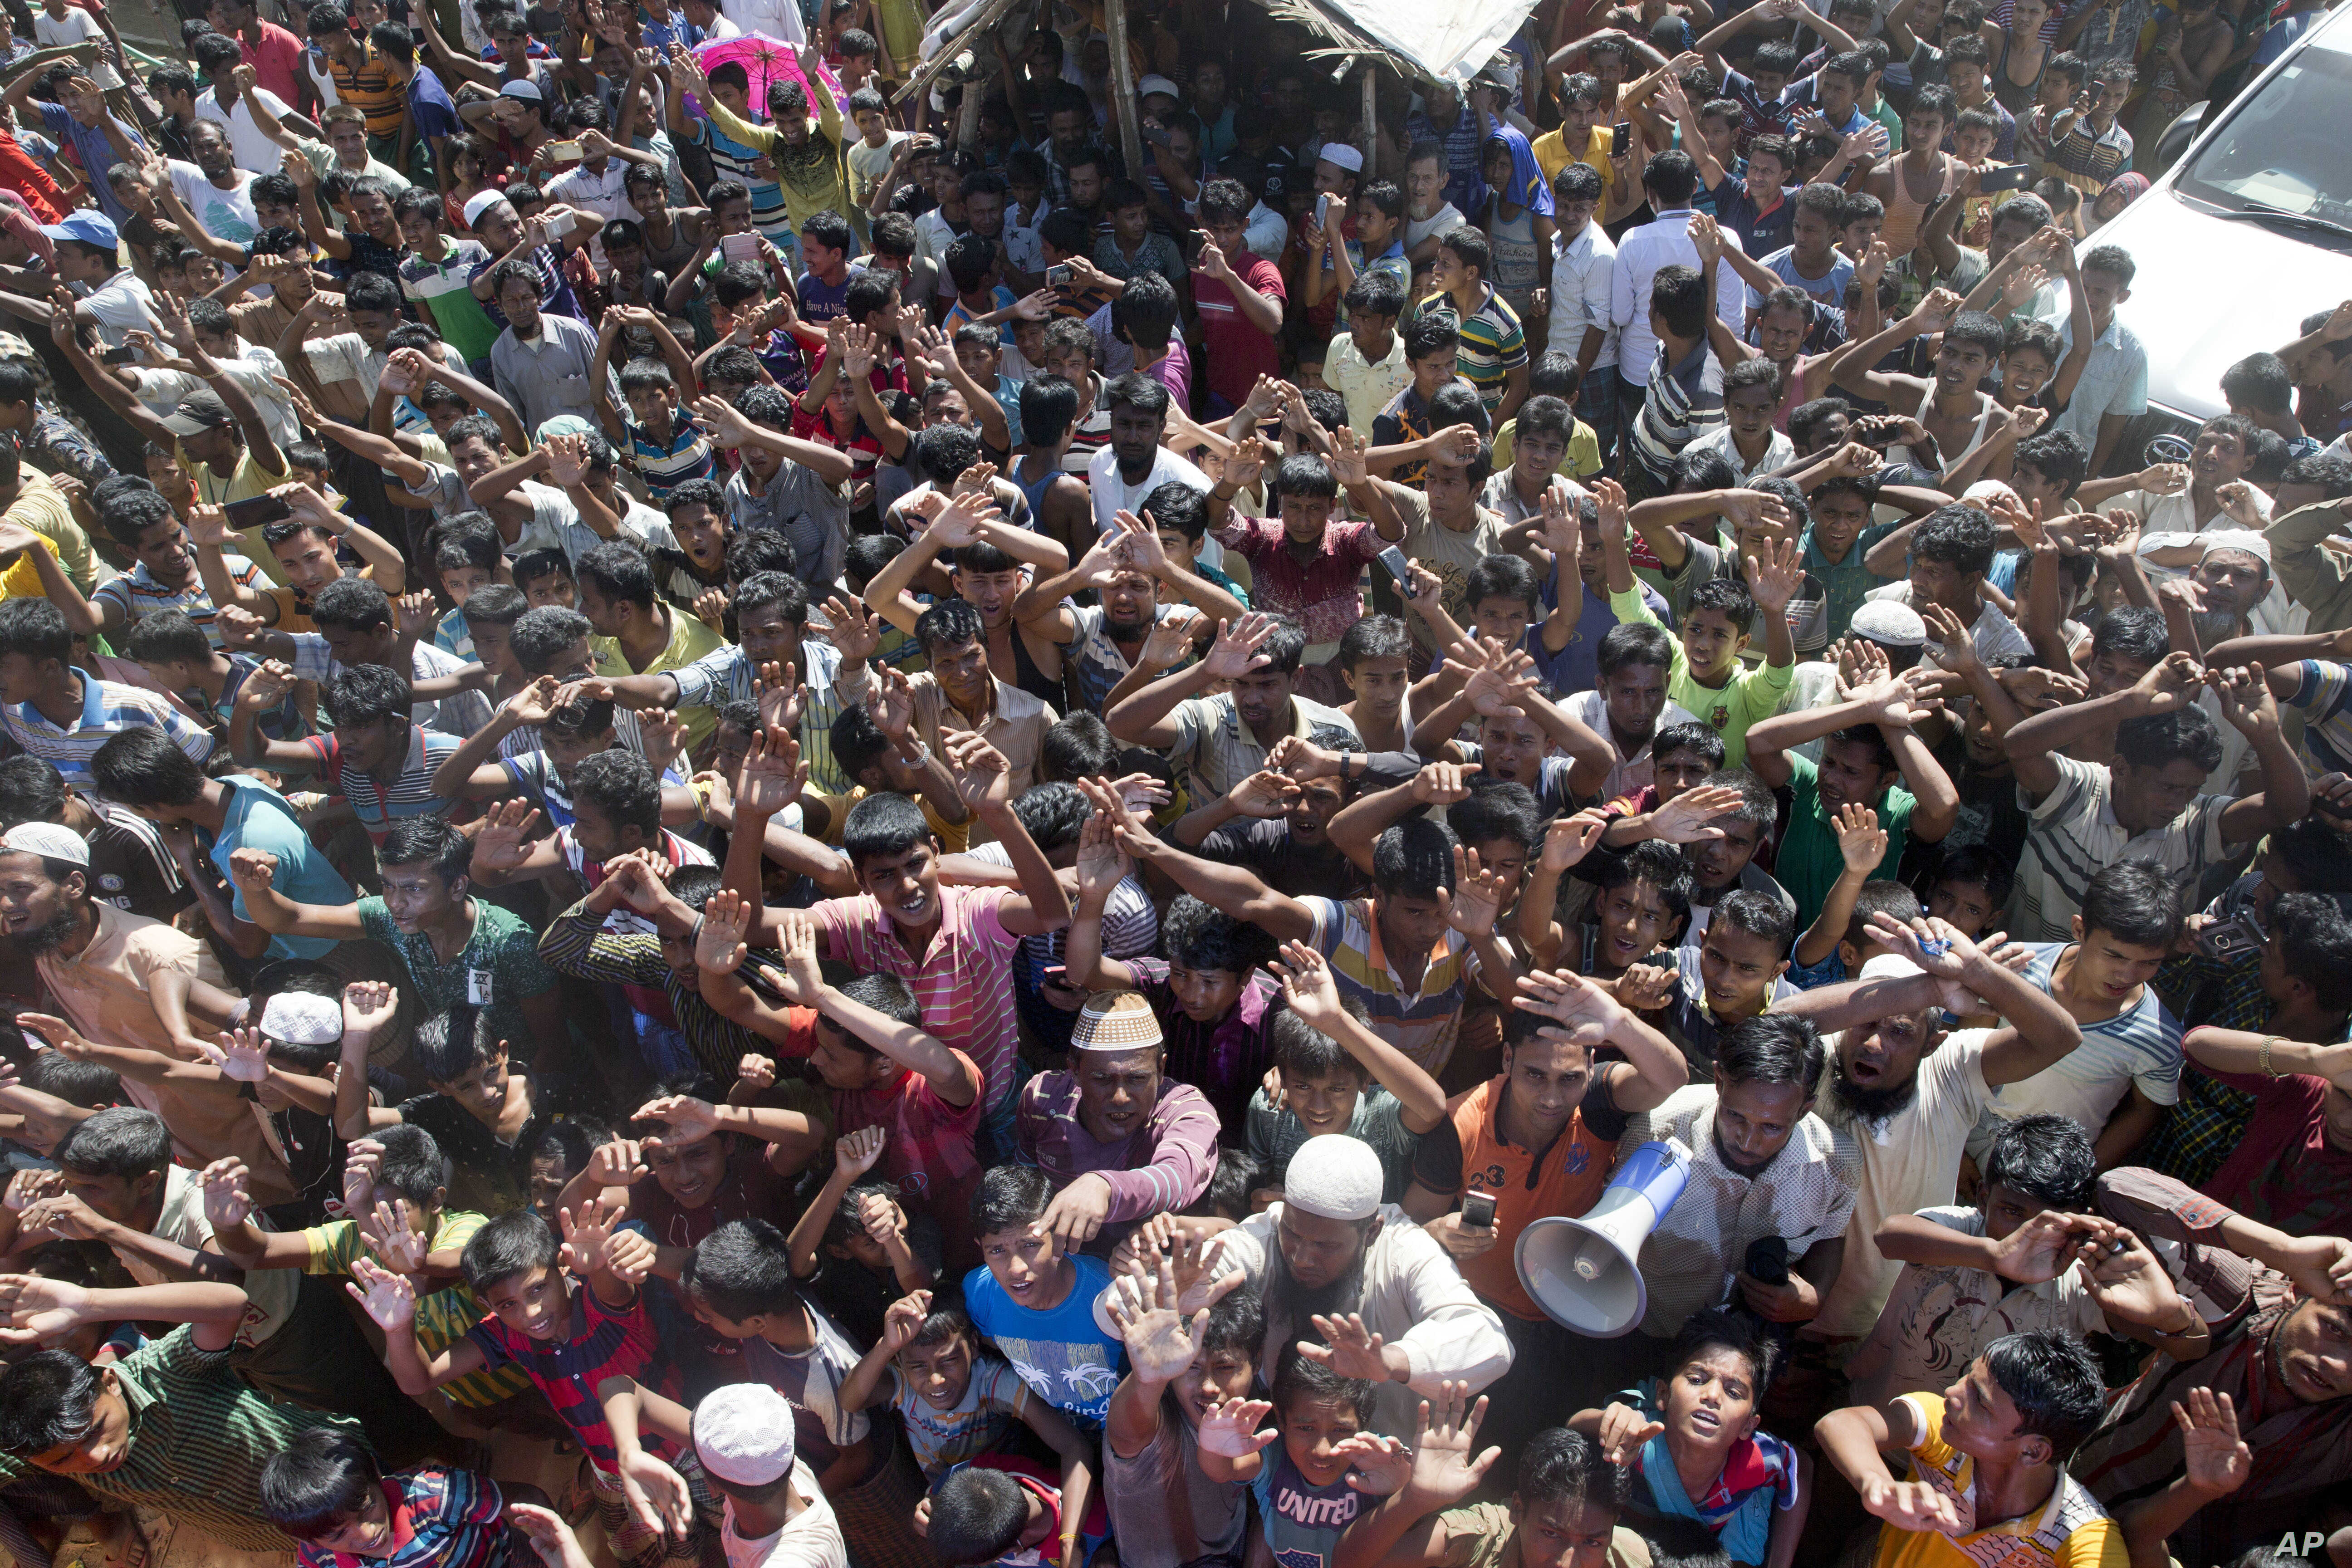 Rohingya refugees shout slogan during a protest against the repatriation process at Unchiprang refugee camp near Cox's Bazar, in Bangladesh, Nov. 15, 2018.